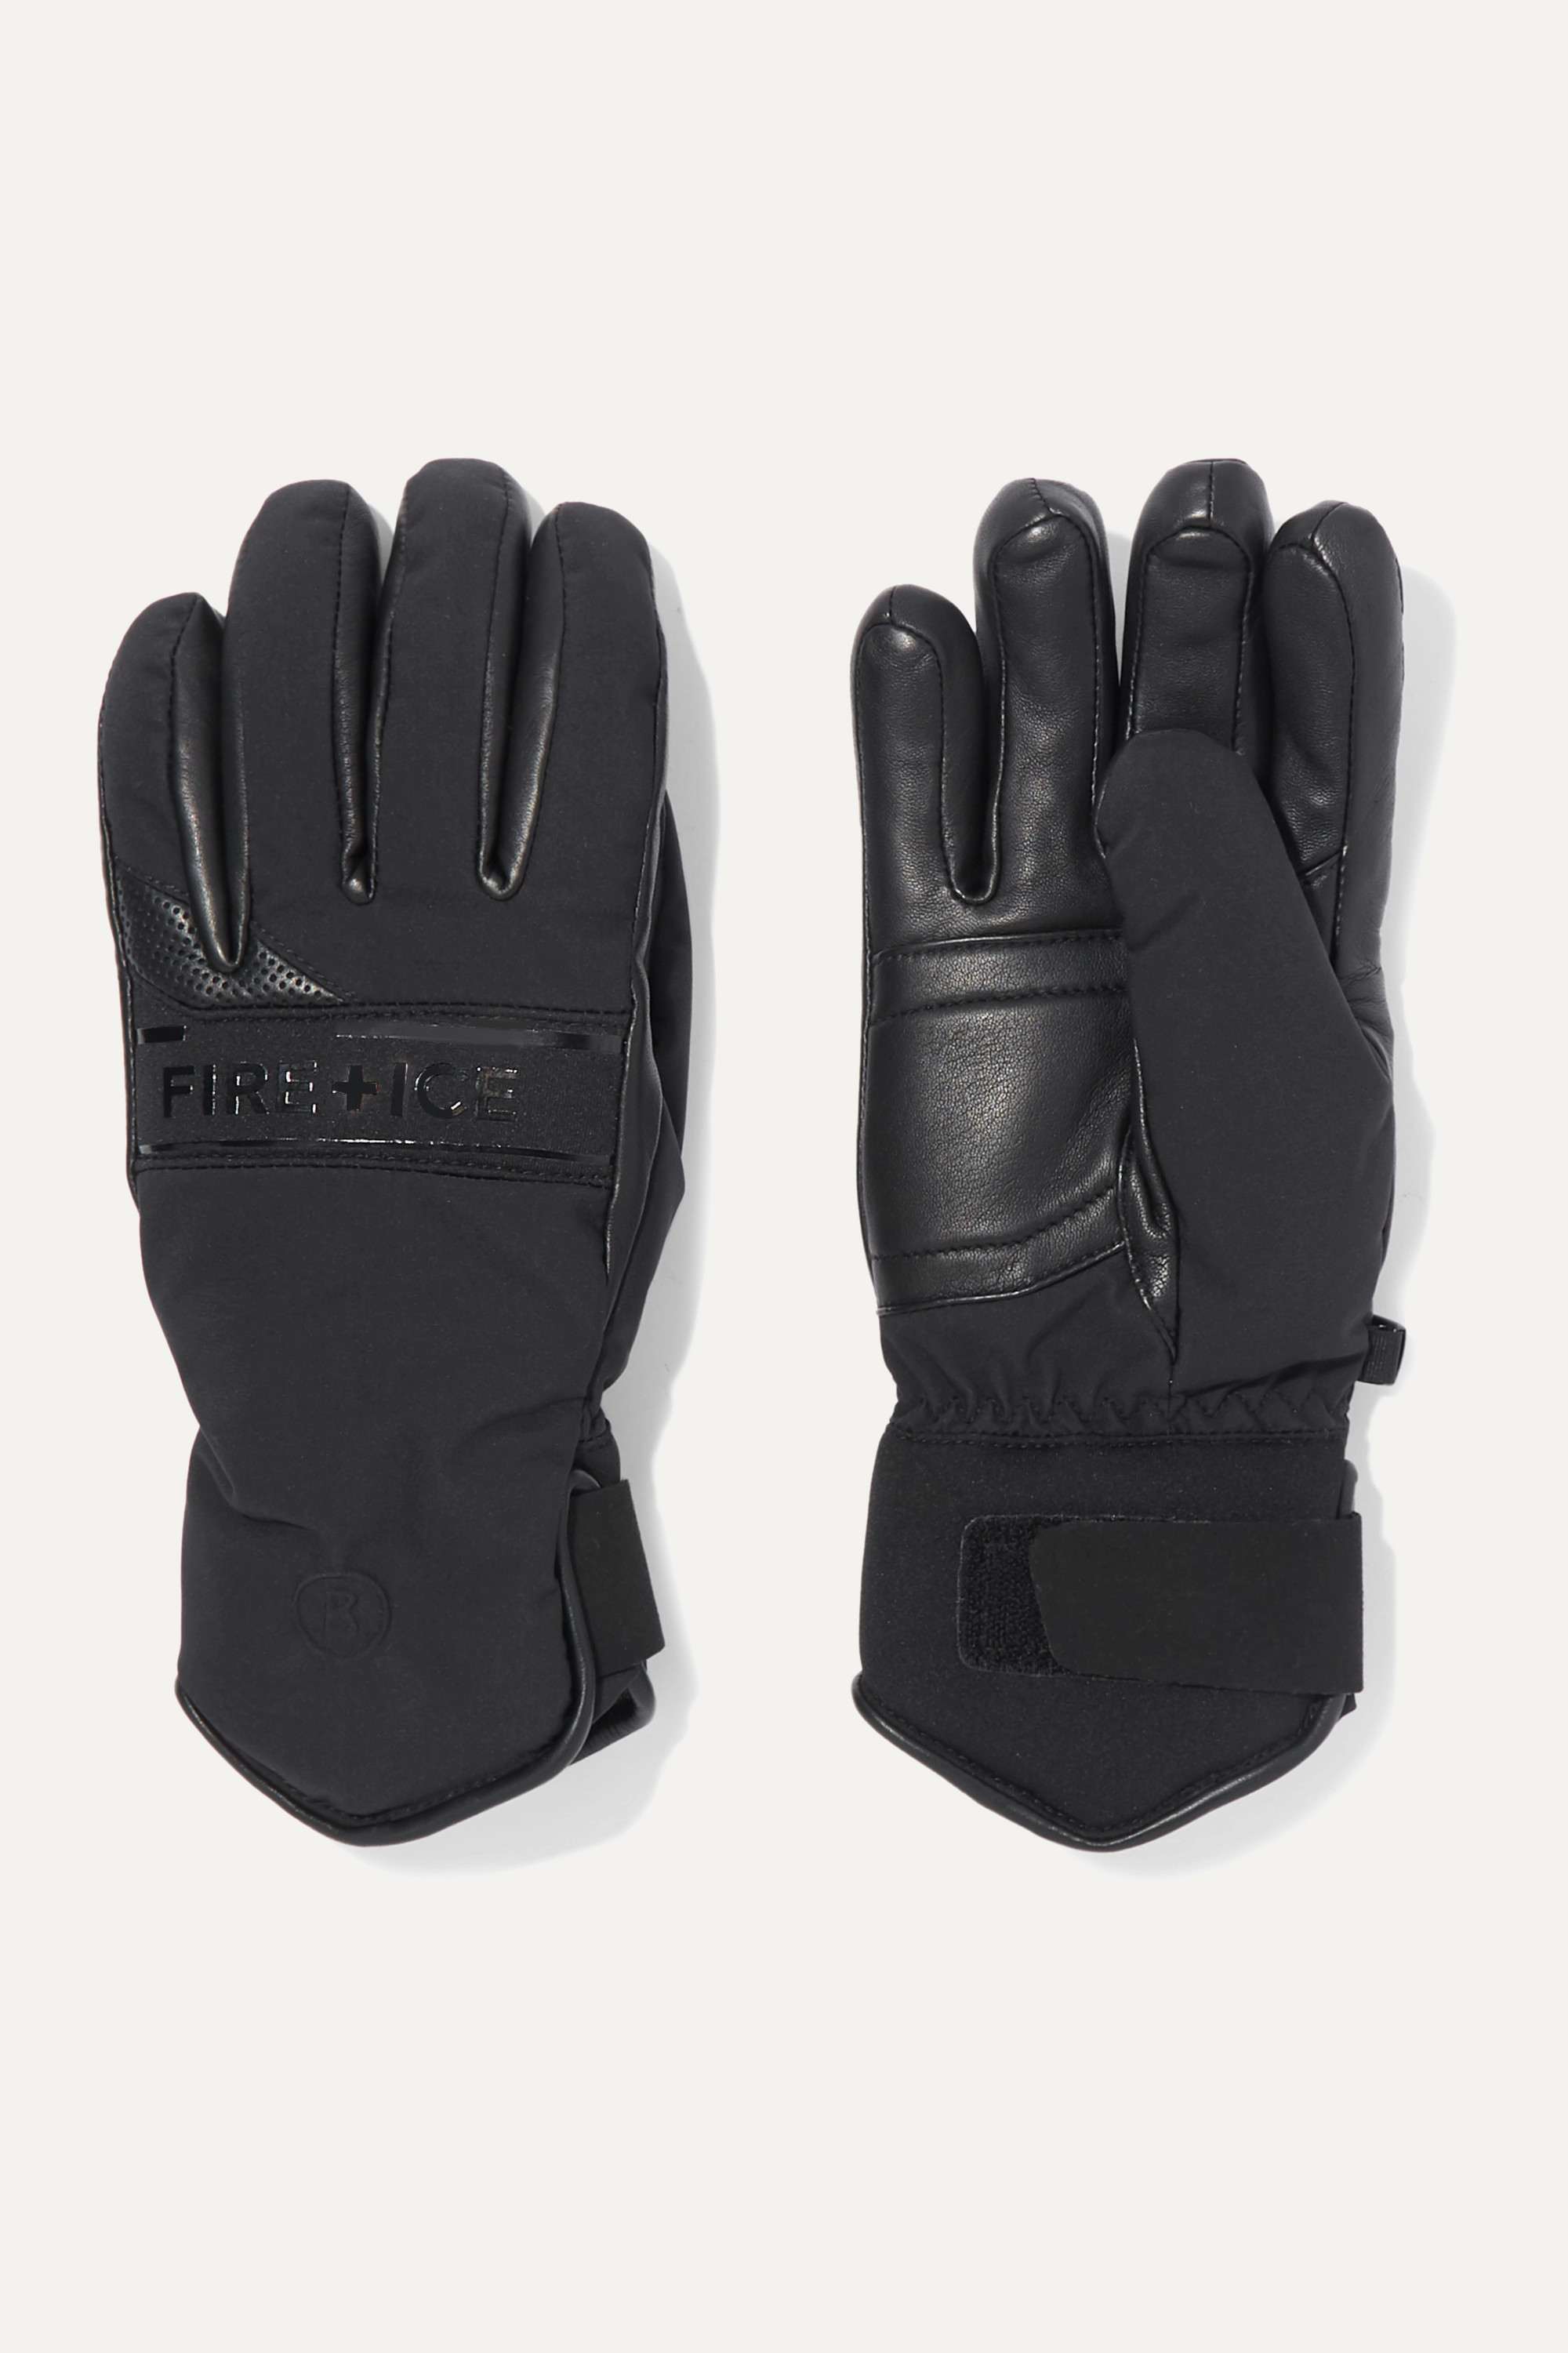 BOGNER FIRE+ICE Isa padded leather and shell ski gloves